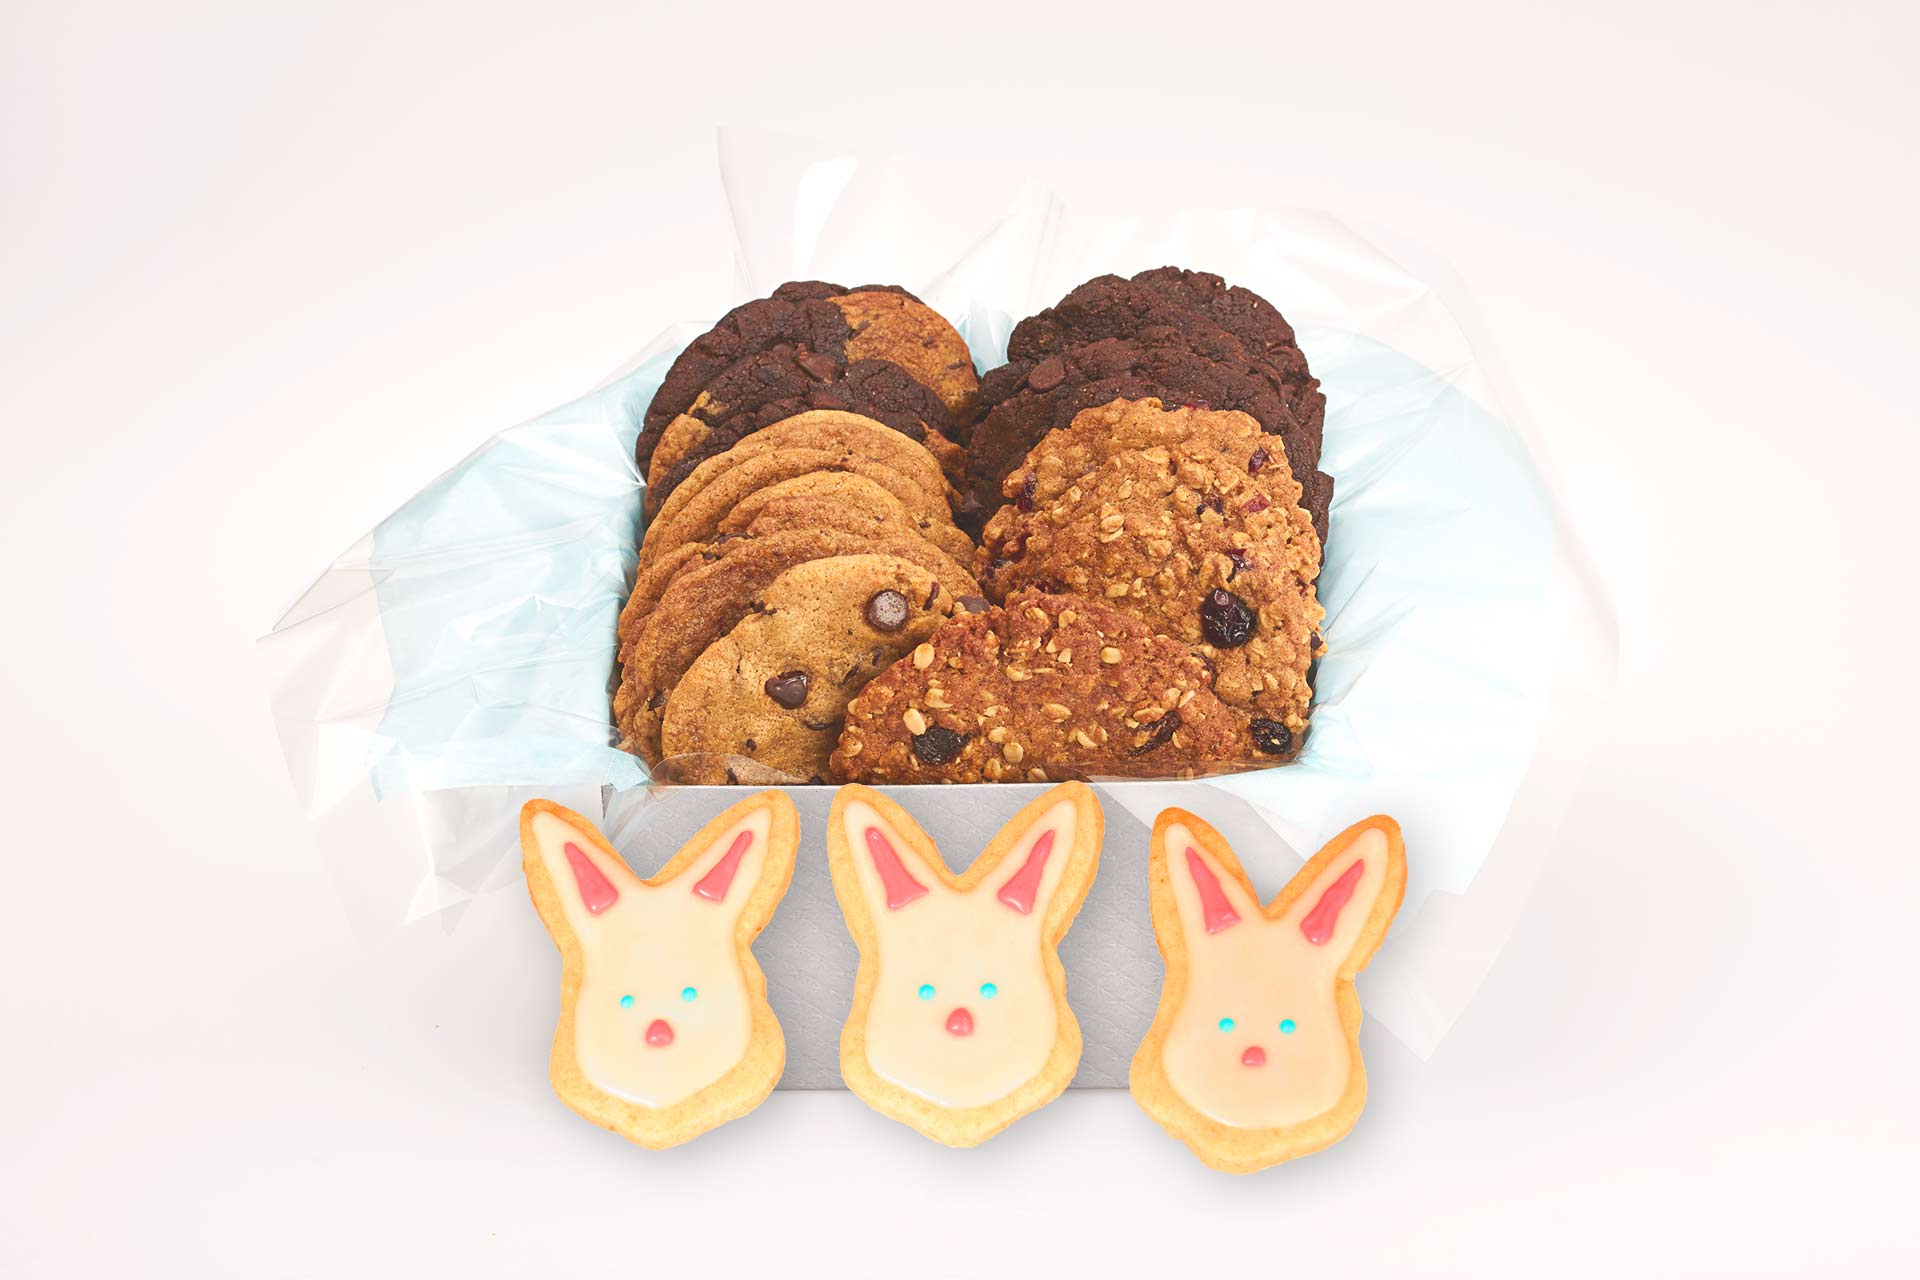 Easter bunny cookie gifts better cookies canada gift boxes with easter bunny sugar cookies for delivery in canada negle Gallery